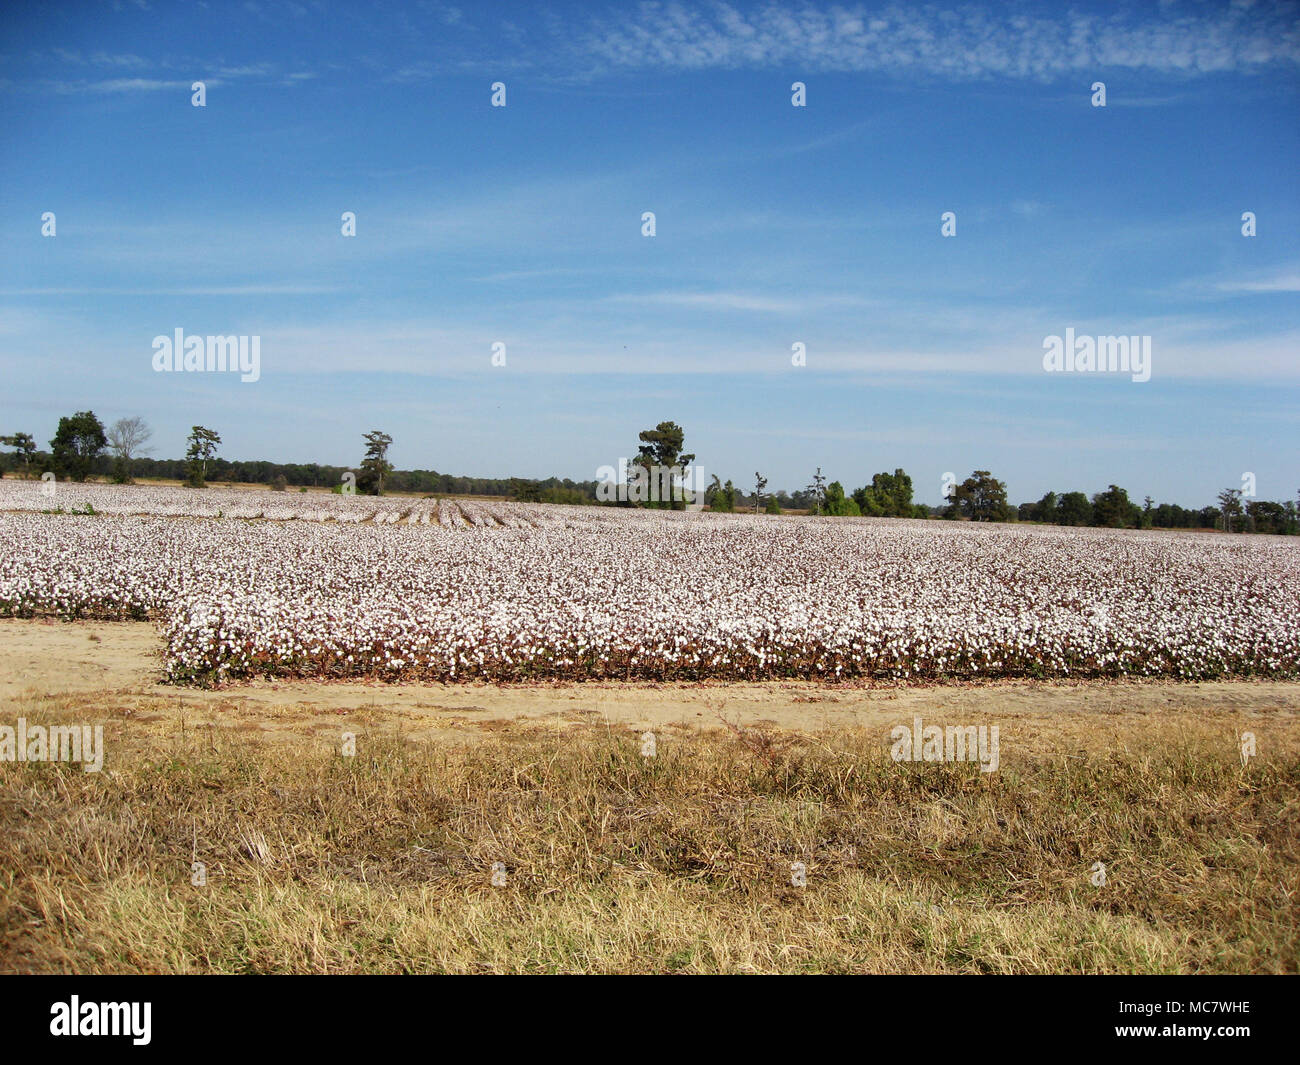 Cotton field in Mississippi - Stock Image